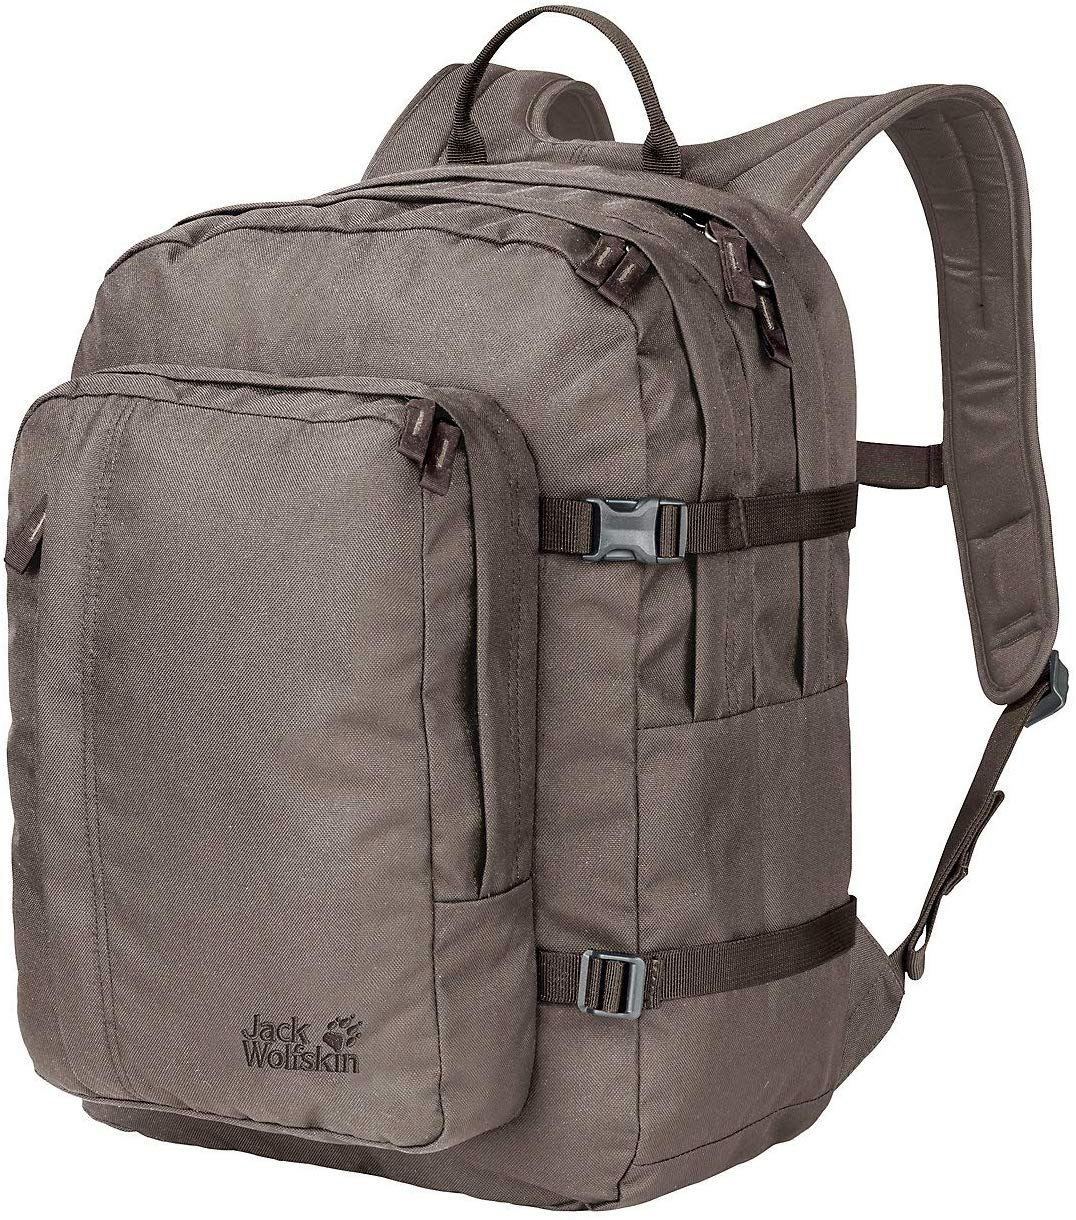 Jack Wolfskin Berkeley Rucksack amazon